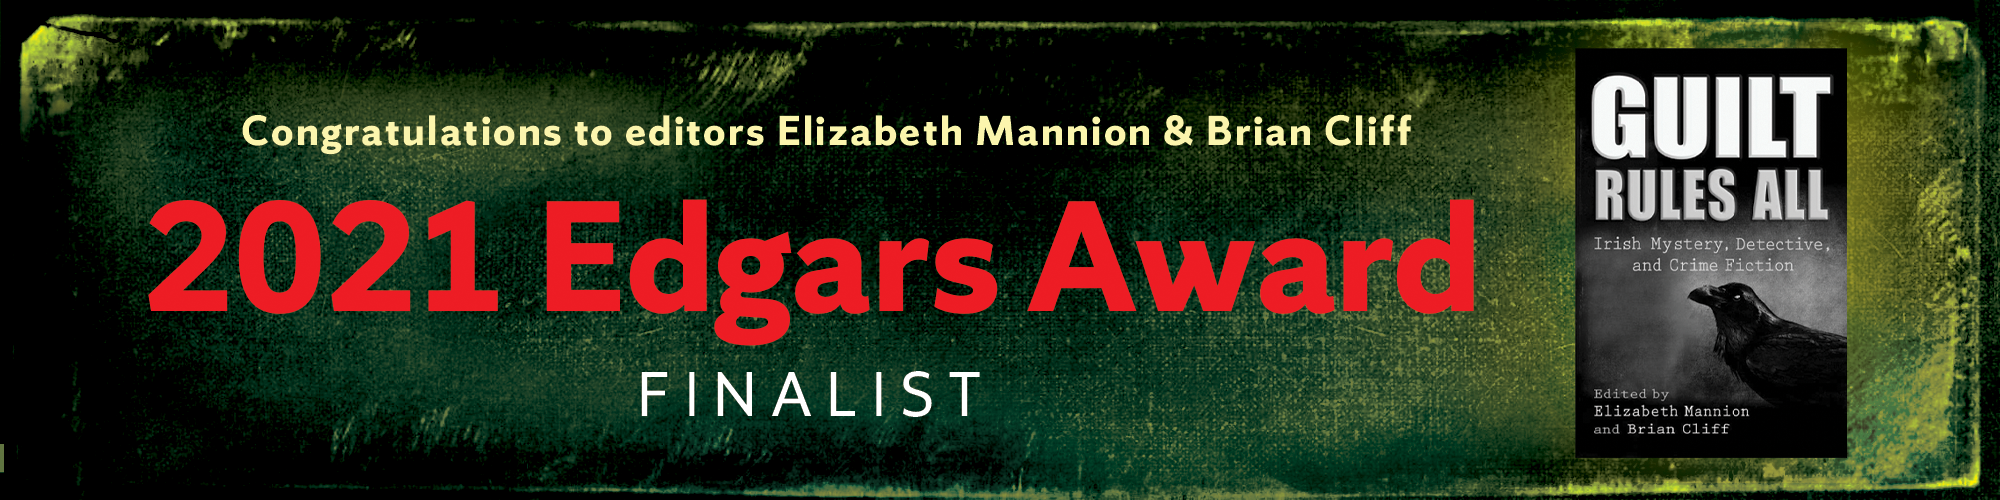 Congratulations to editors Elizabeth Mannion & Brian Cliff 2021 Edgars Award finalist